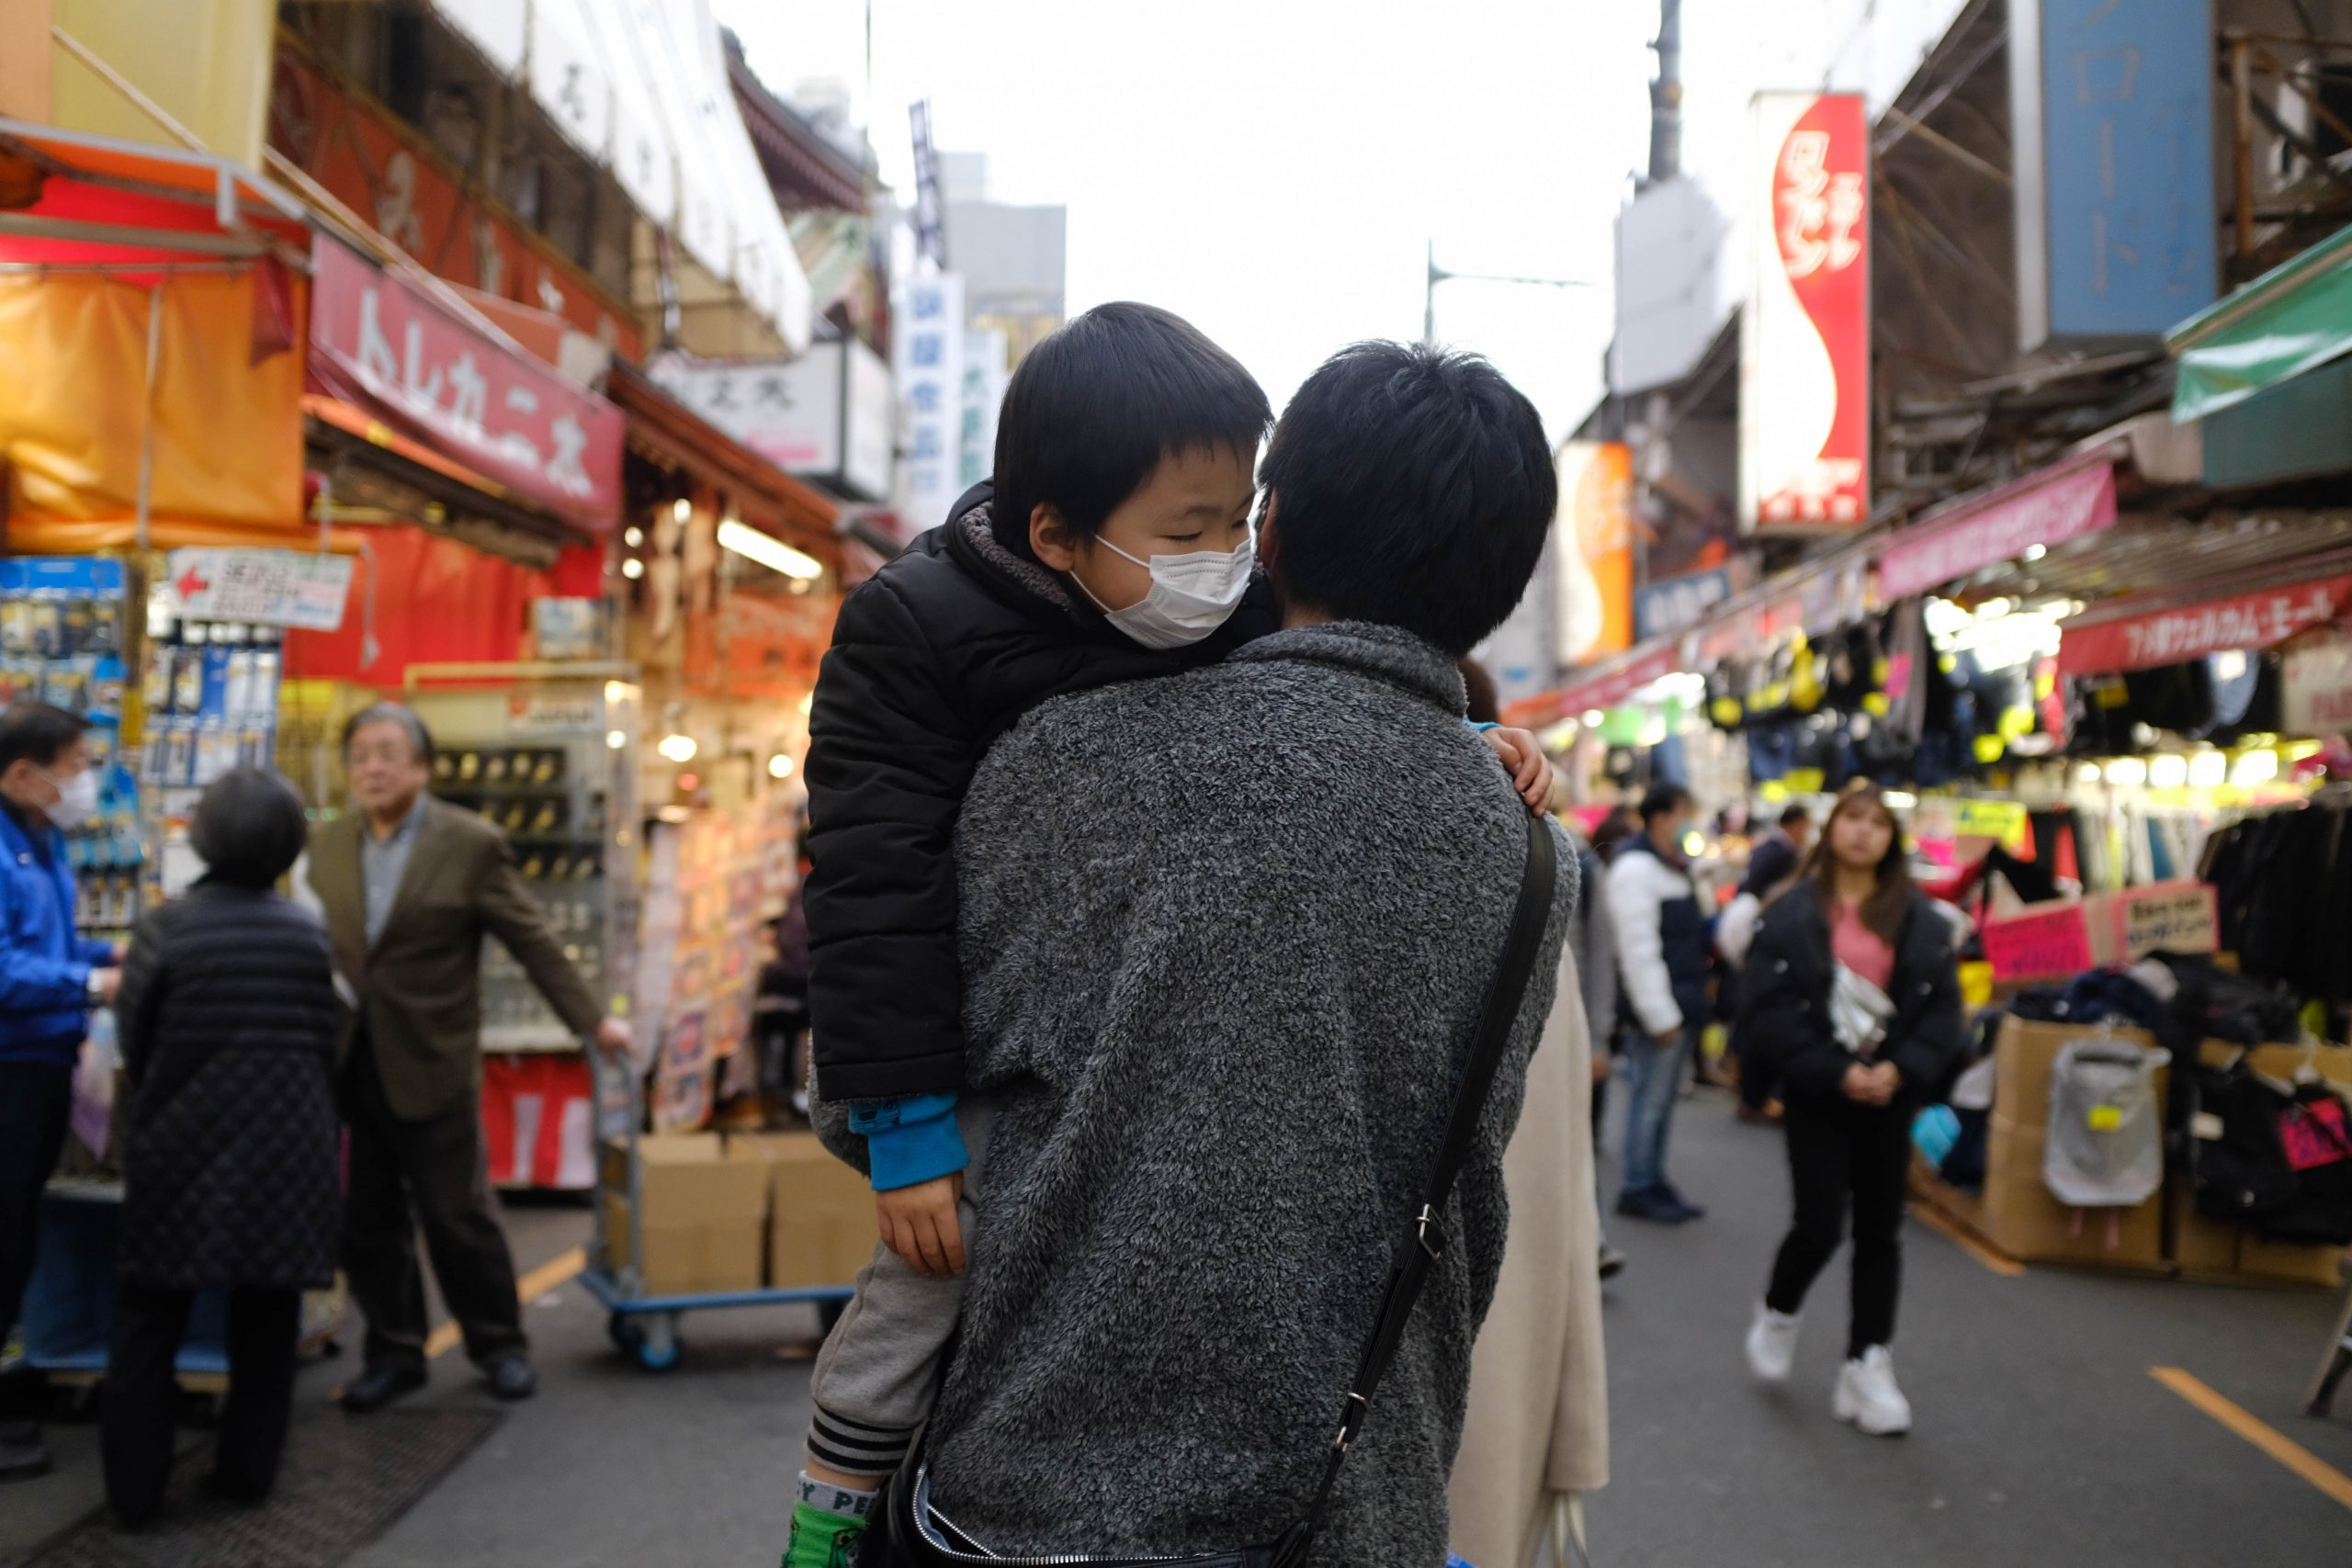 Will the Coronavirus change what Japanese consumers want?